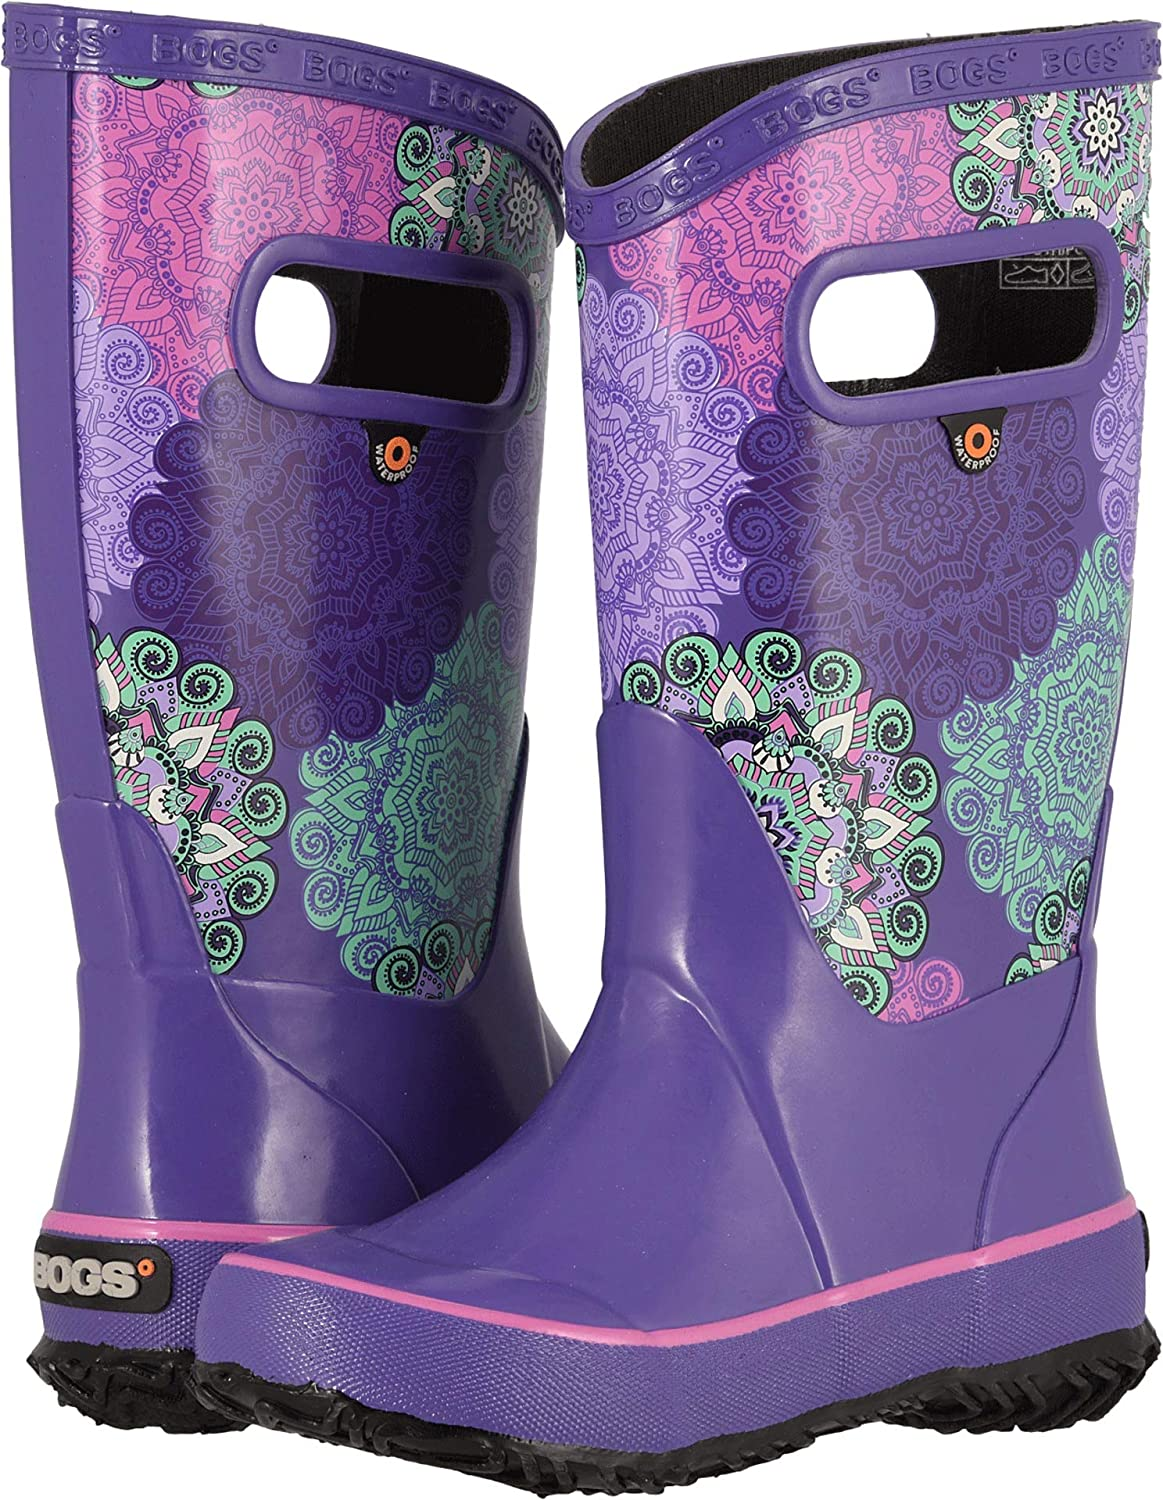 Bogs Kids Girls Rain Boot Mandalla Toddler//Little Kid//Big Kid Violet Multi 13 Little Kid M